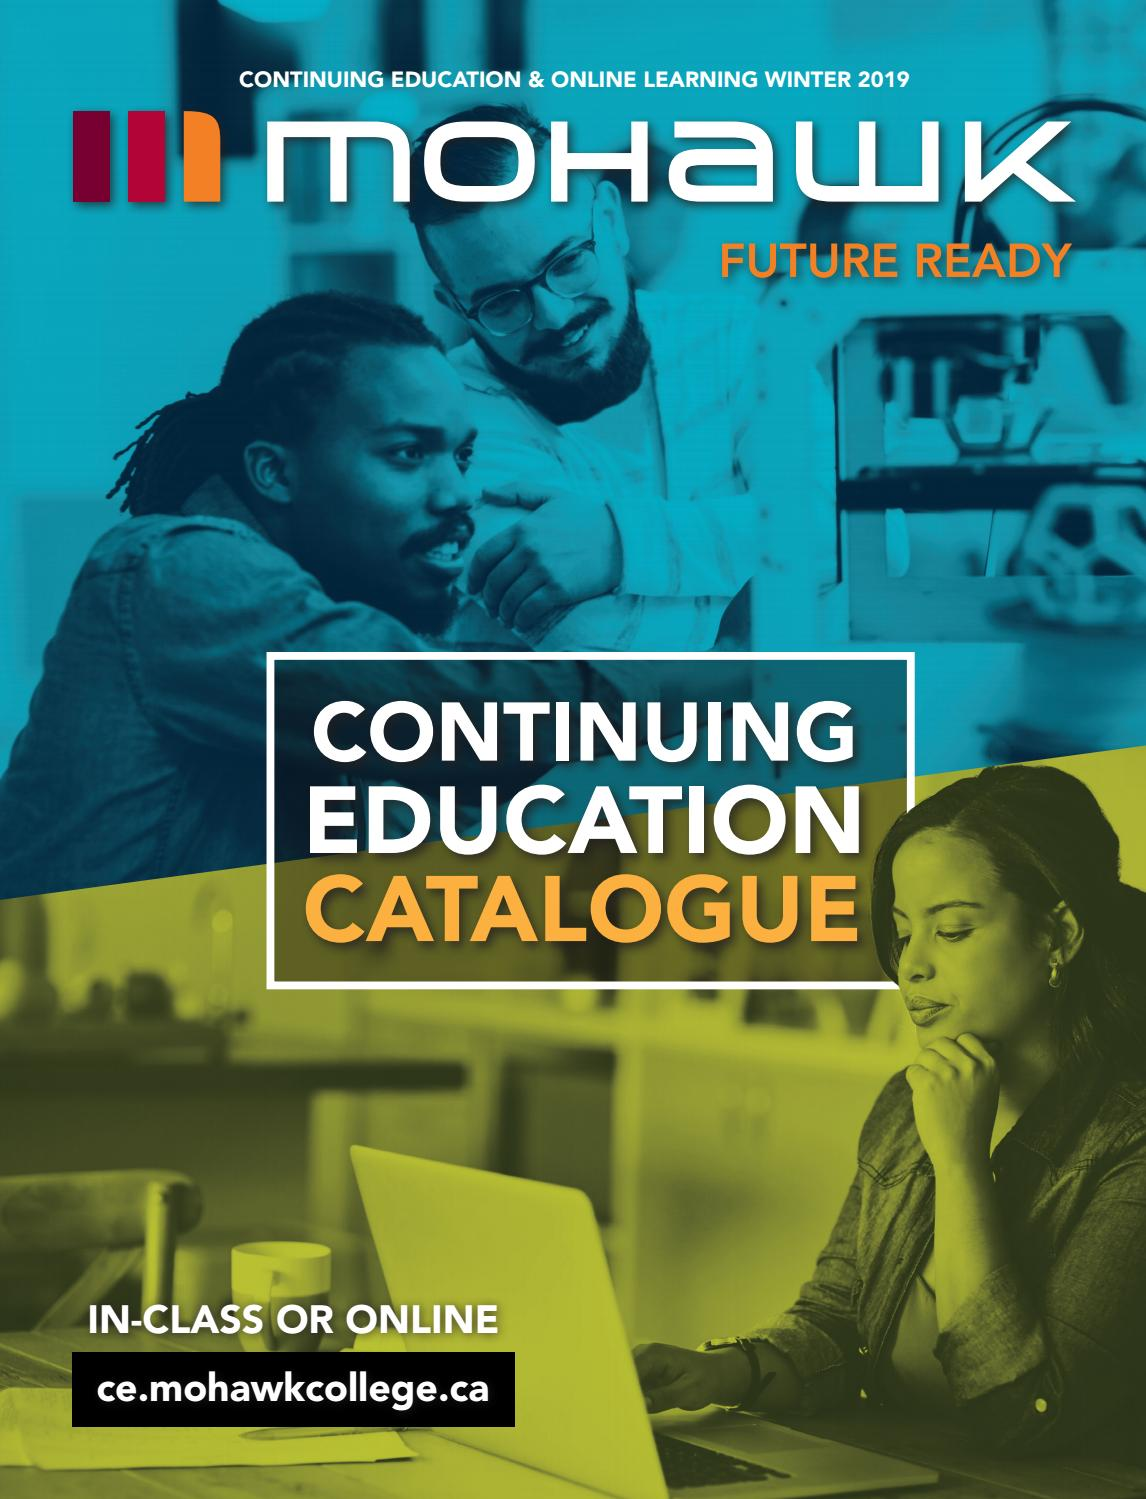 Mohawk College Continuing Education Catalogue Winter 2019 by Mohawk College  - issuu